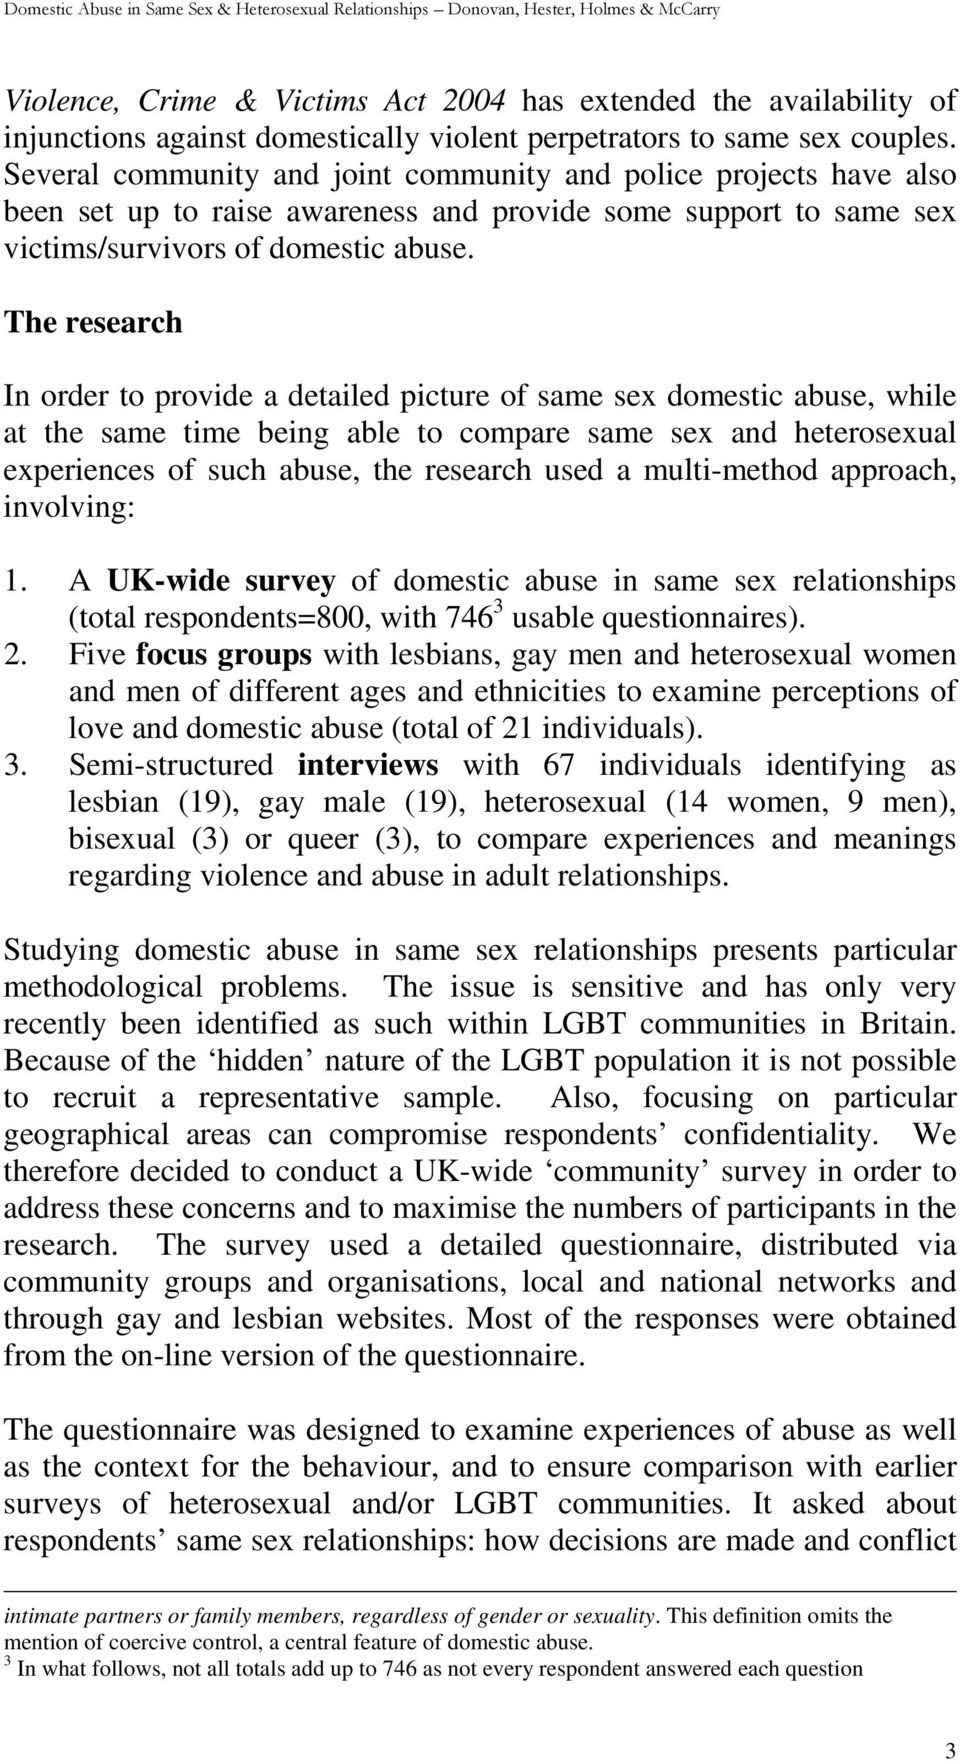 The research In order to provide a detailed picture of same sex domestic abuse, while at the same time being able to compare same sex and heterosexual experiences of such abuse, the research used a